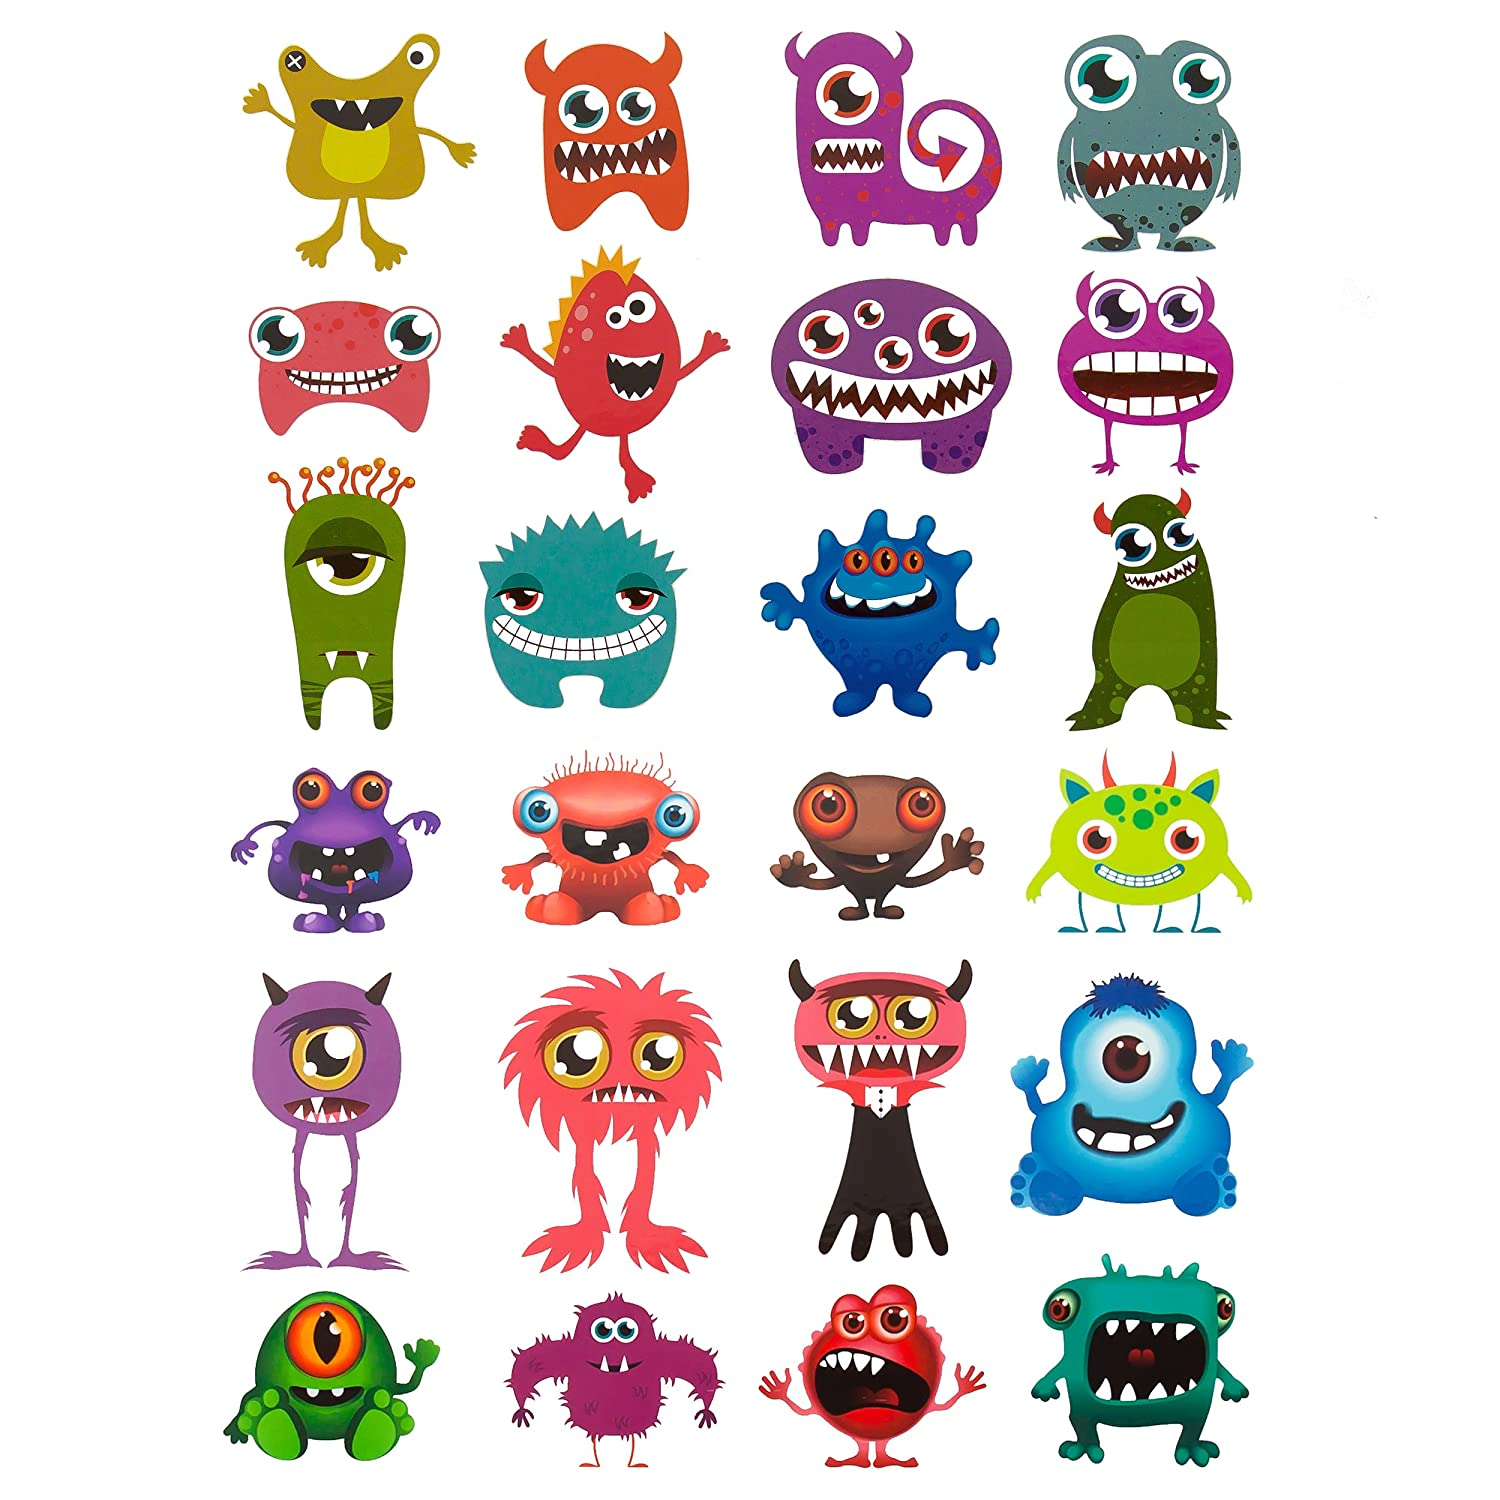 Oblique Unique® Tattoos Pack of 24 Funny Colorful Monsters Temporary Tattoos for Boys Girls Oblique-Unique CM-120-24